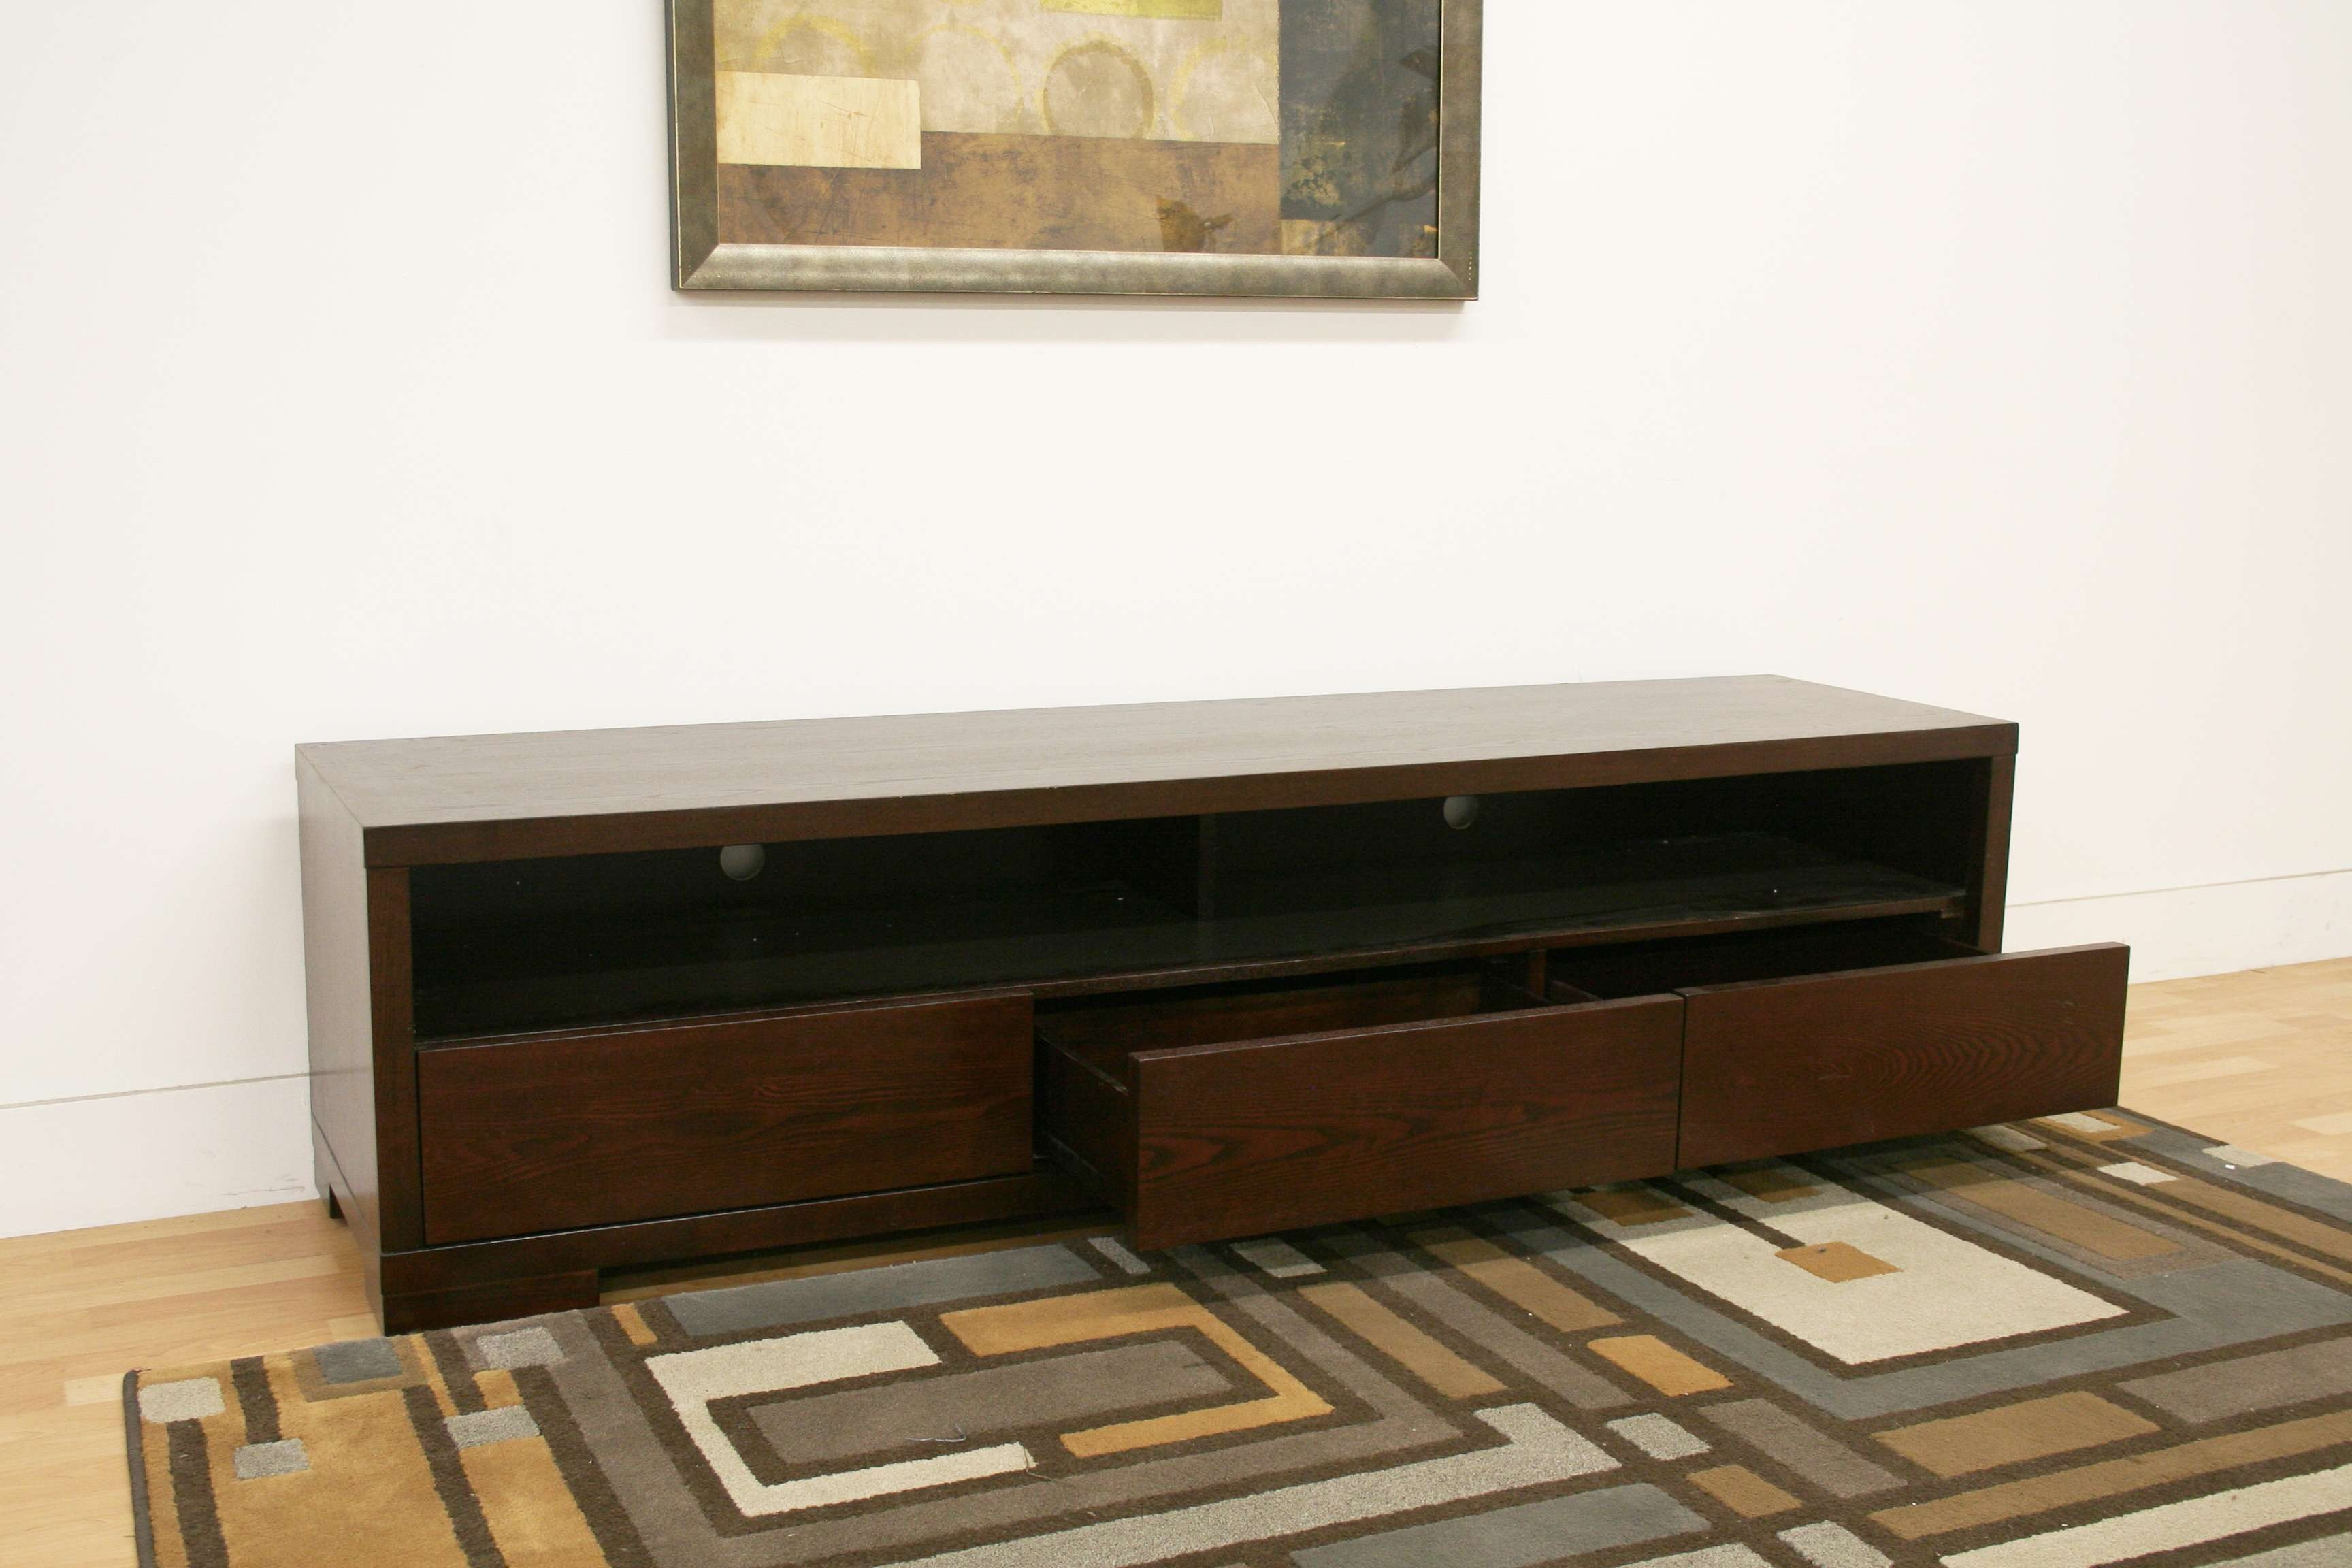 Howling Low Profile Tv Stand Low Profile Tv Stand Plans Low Profile Tv Stands Tv Stand Media Console Designs Showcasing This Styles Within Low Profile Tv Stands Explore Gallery houzz 01 Low Profile Tv Stand